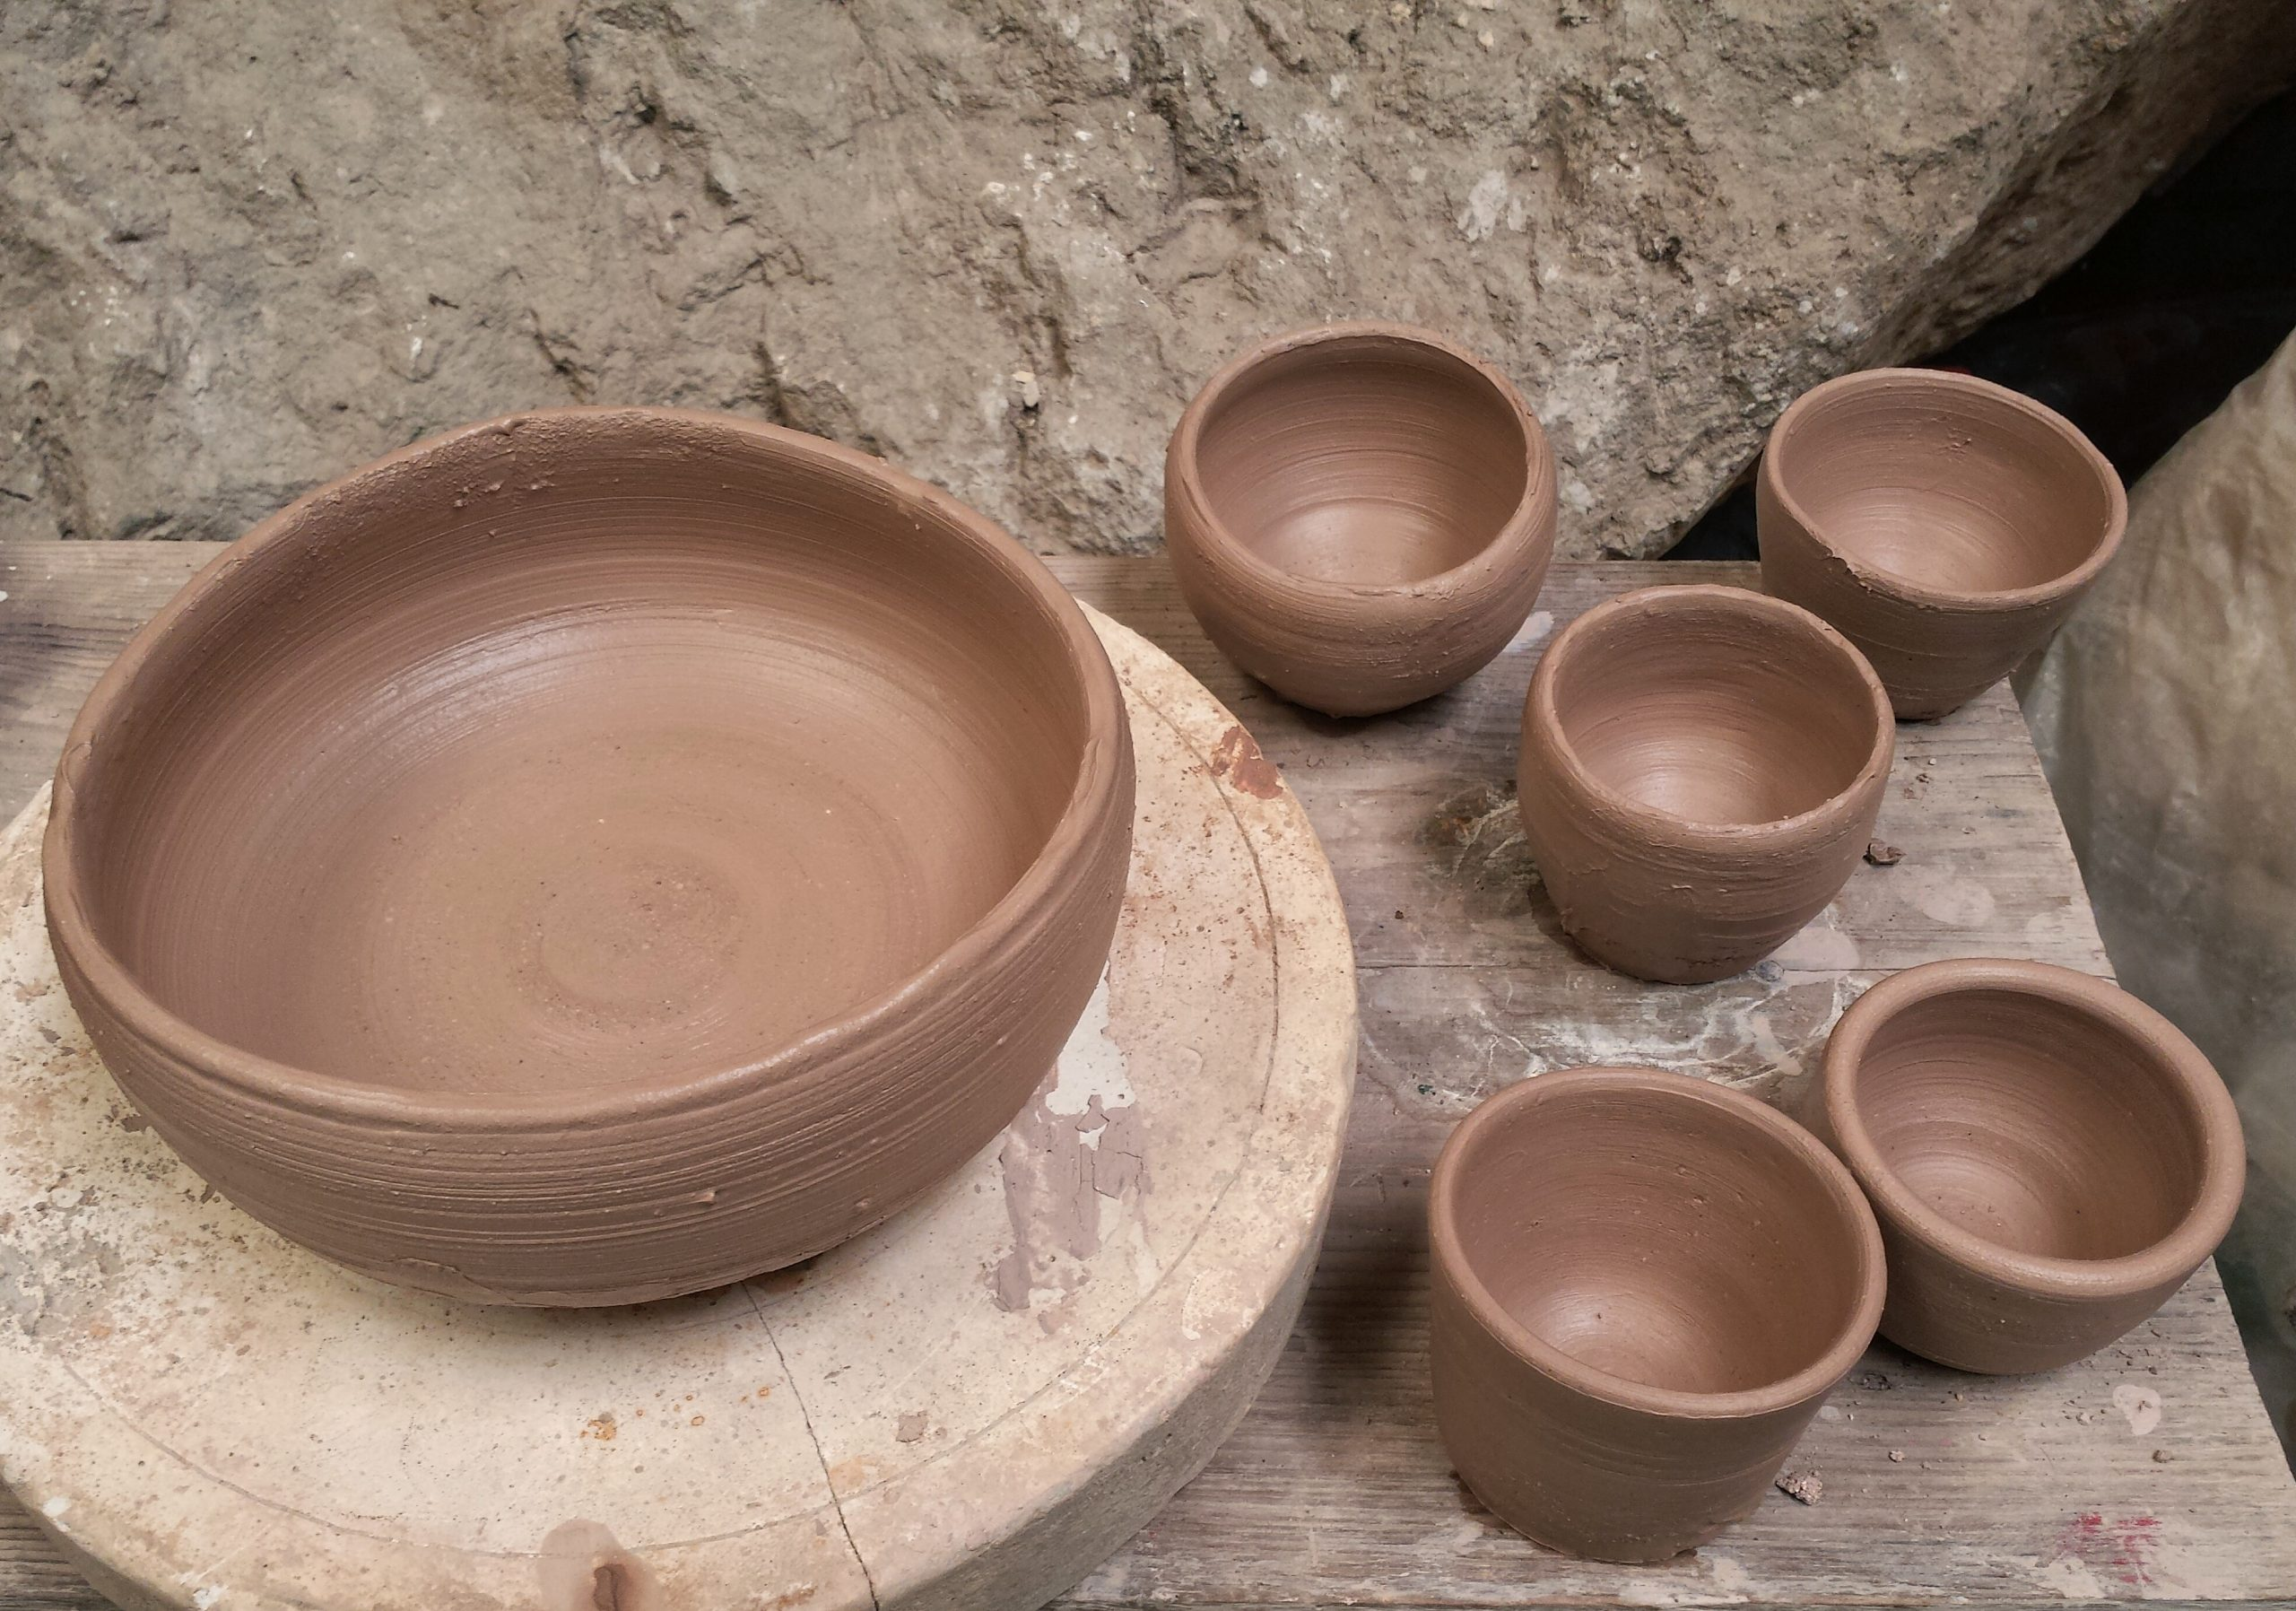 Wet clay bowls